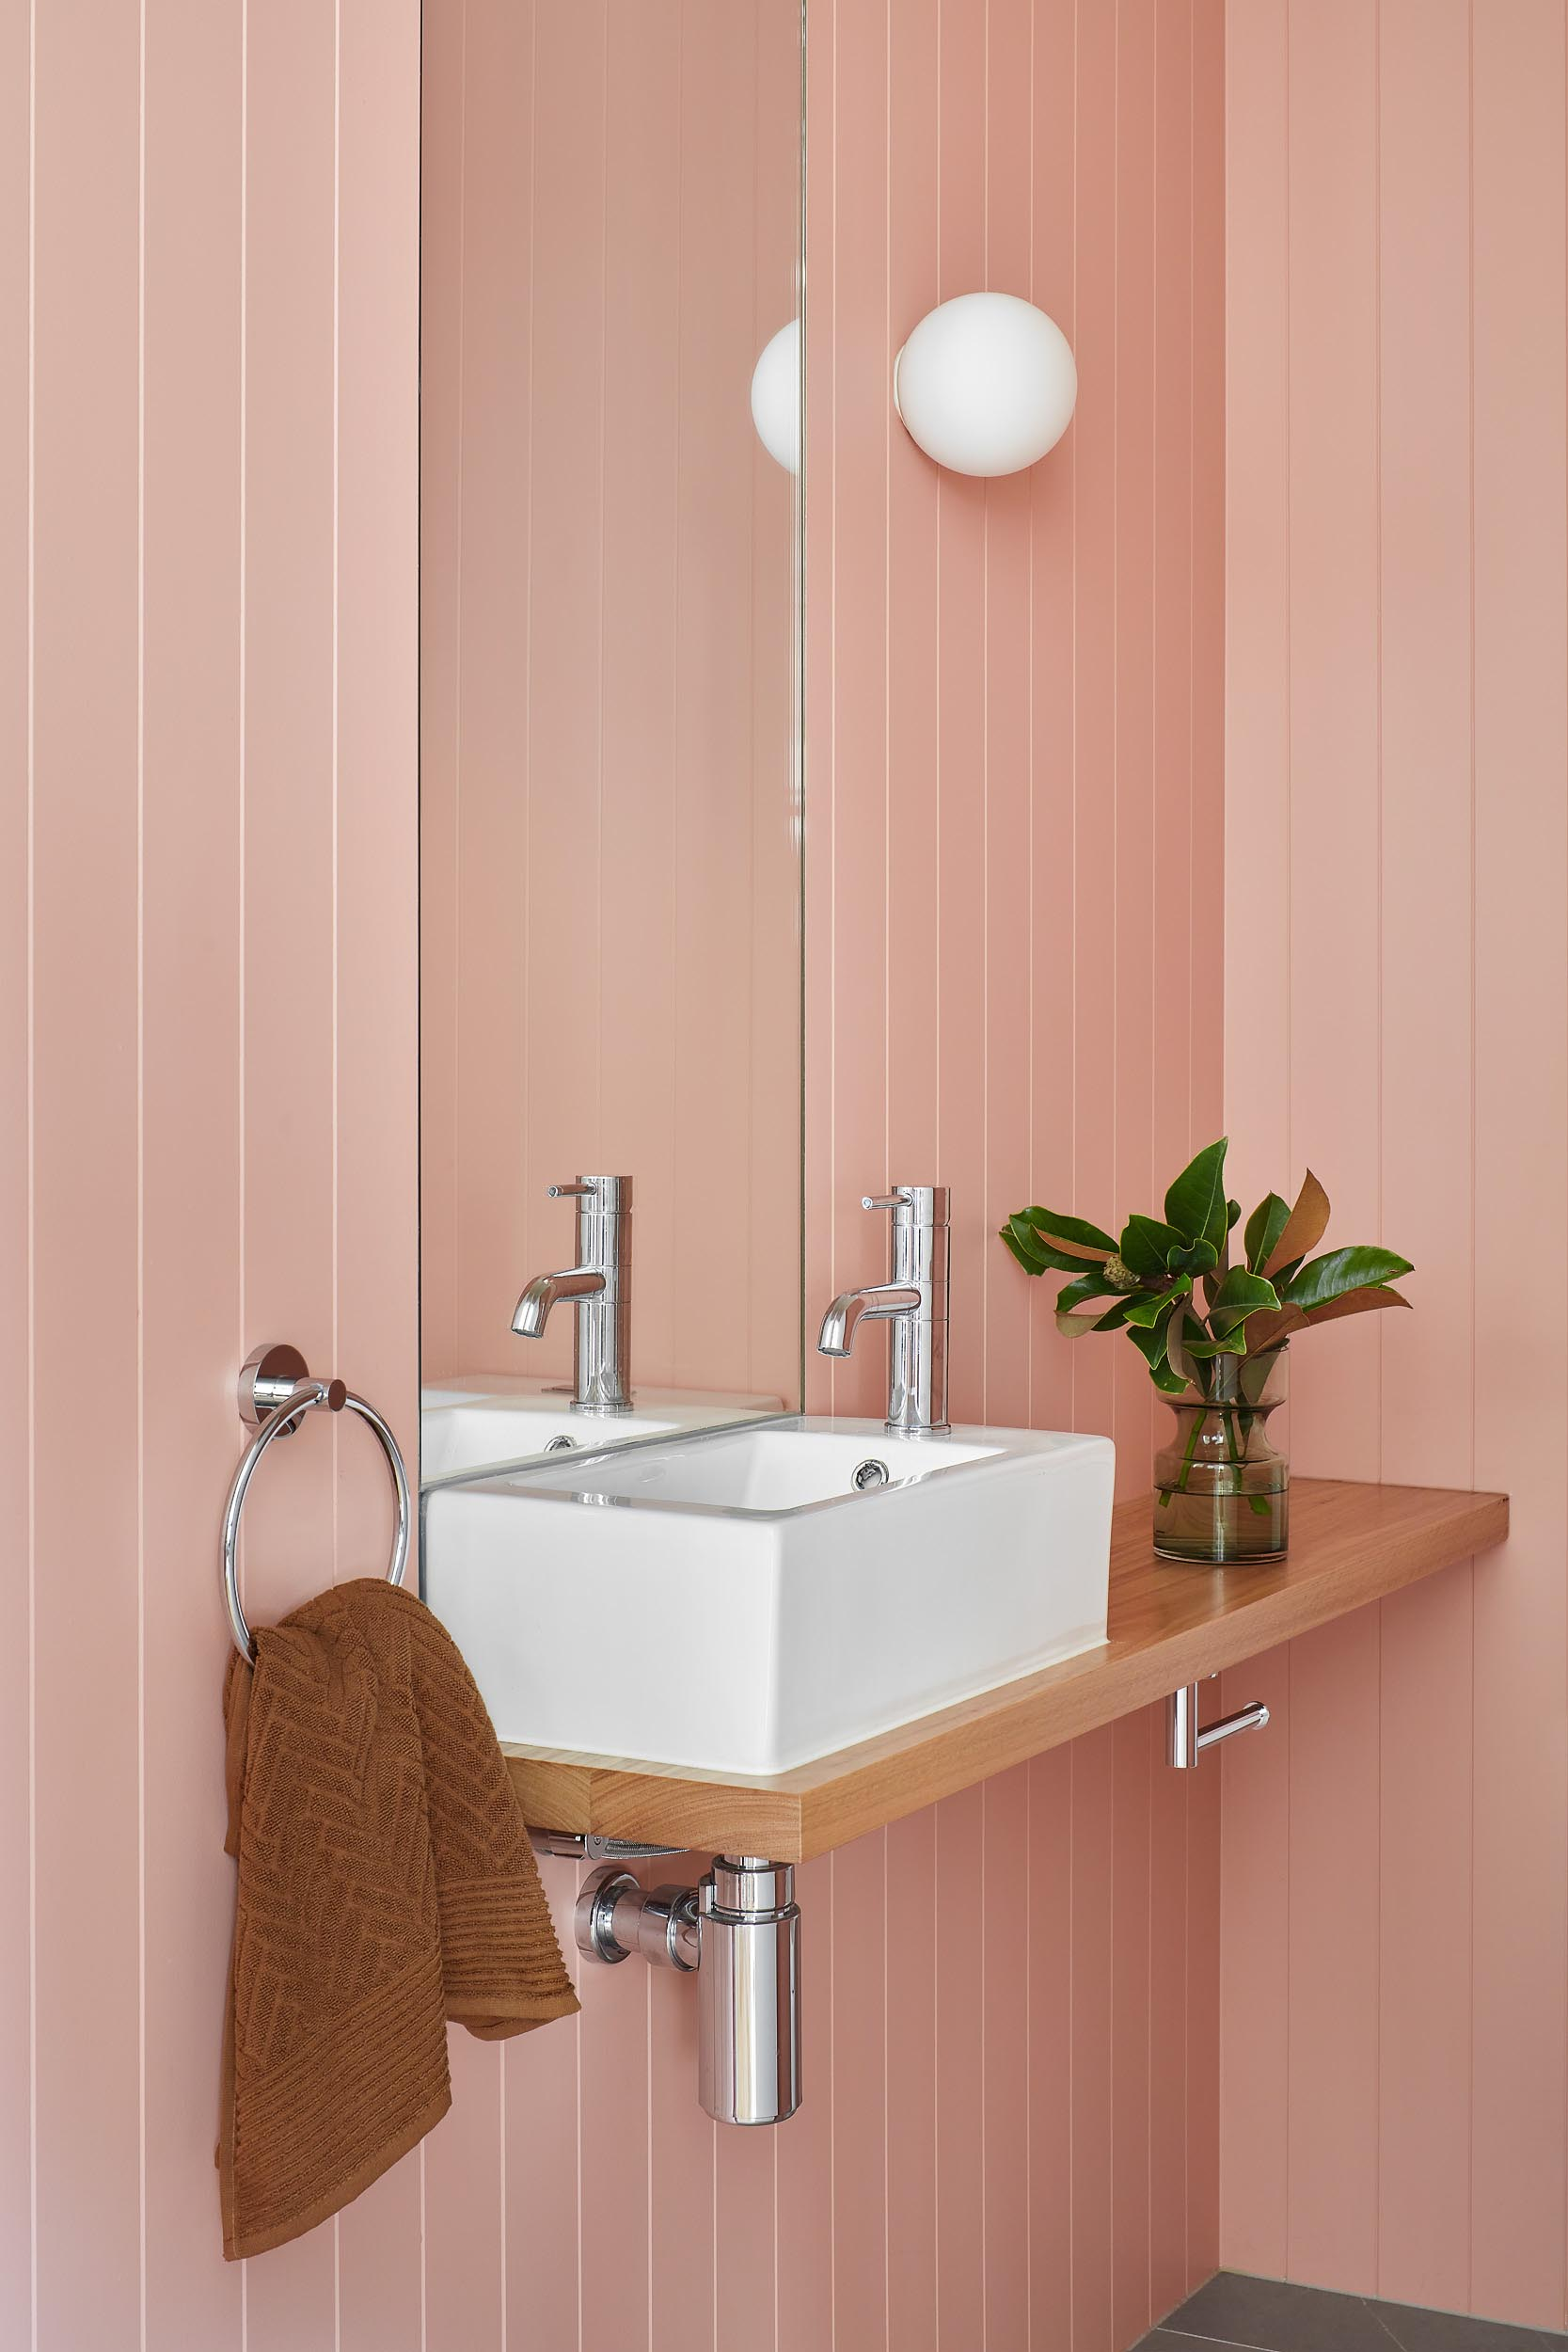 Soft pink walls add a colorful touch to this modern bathroom.